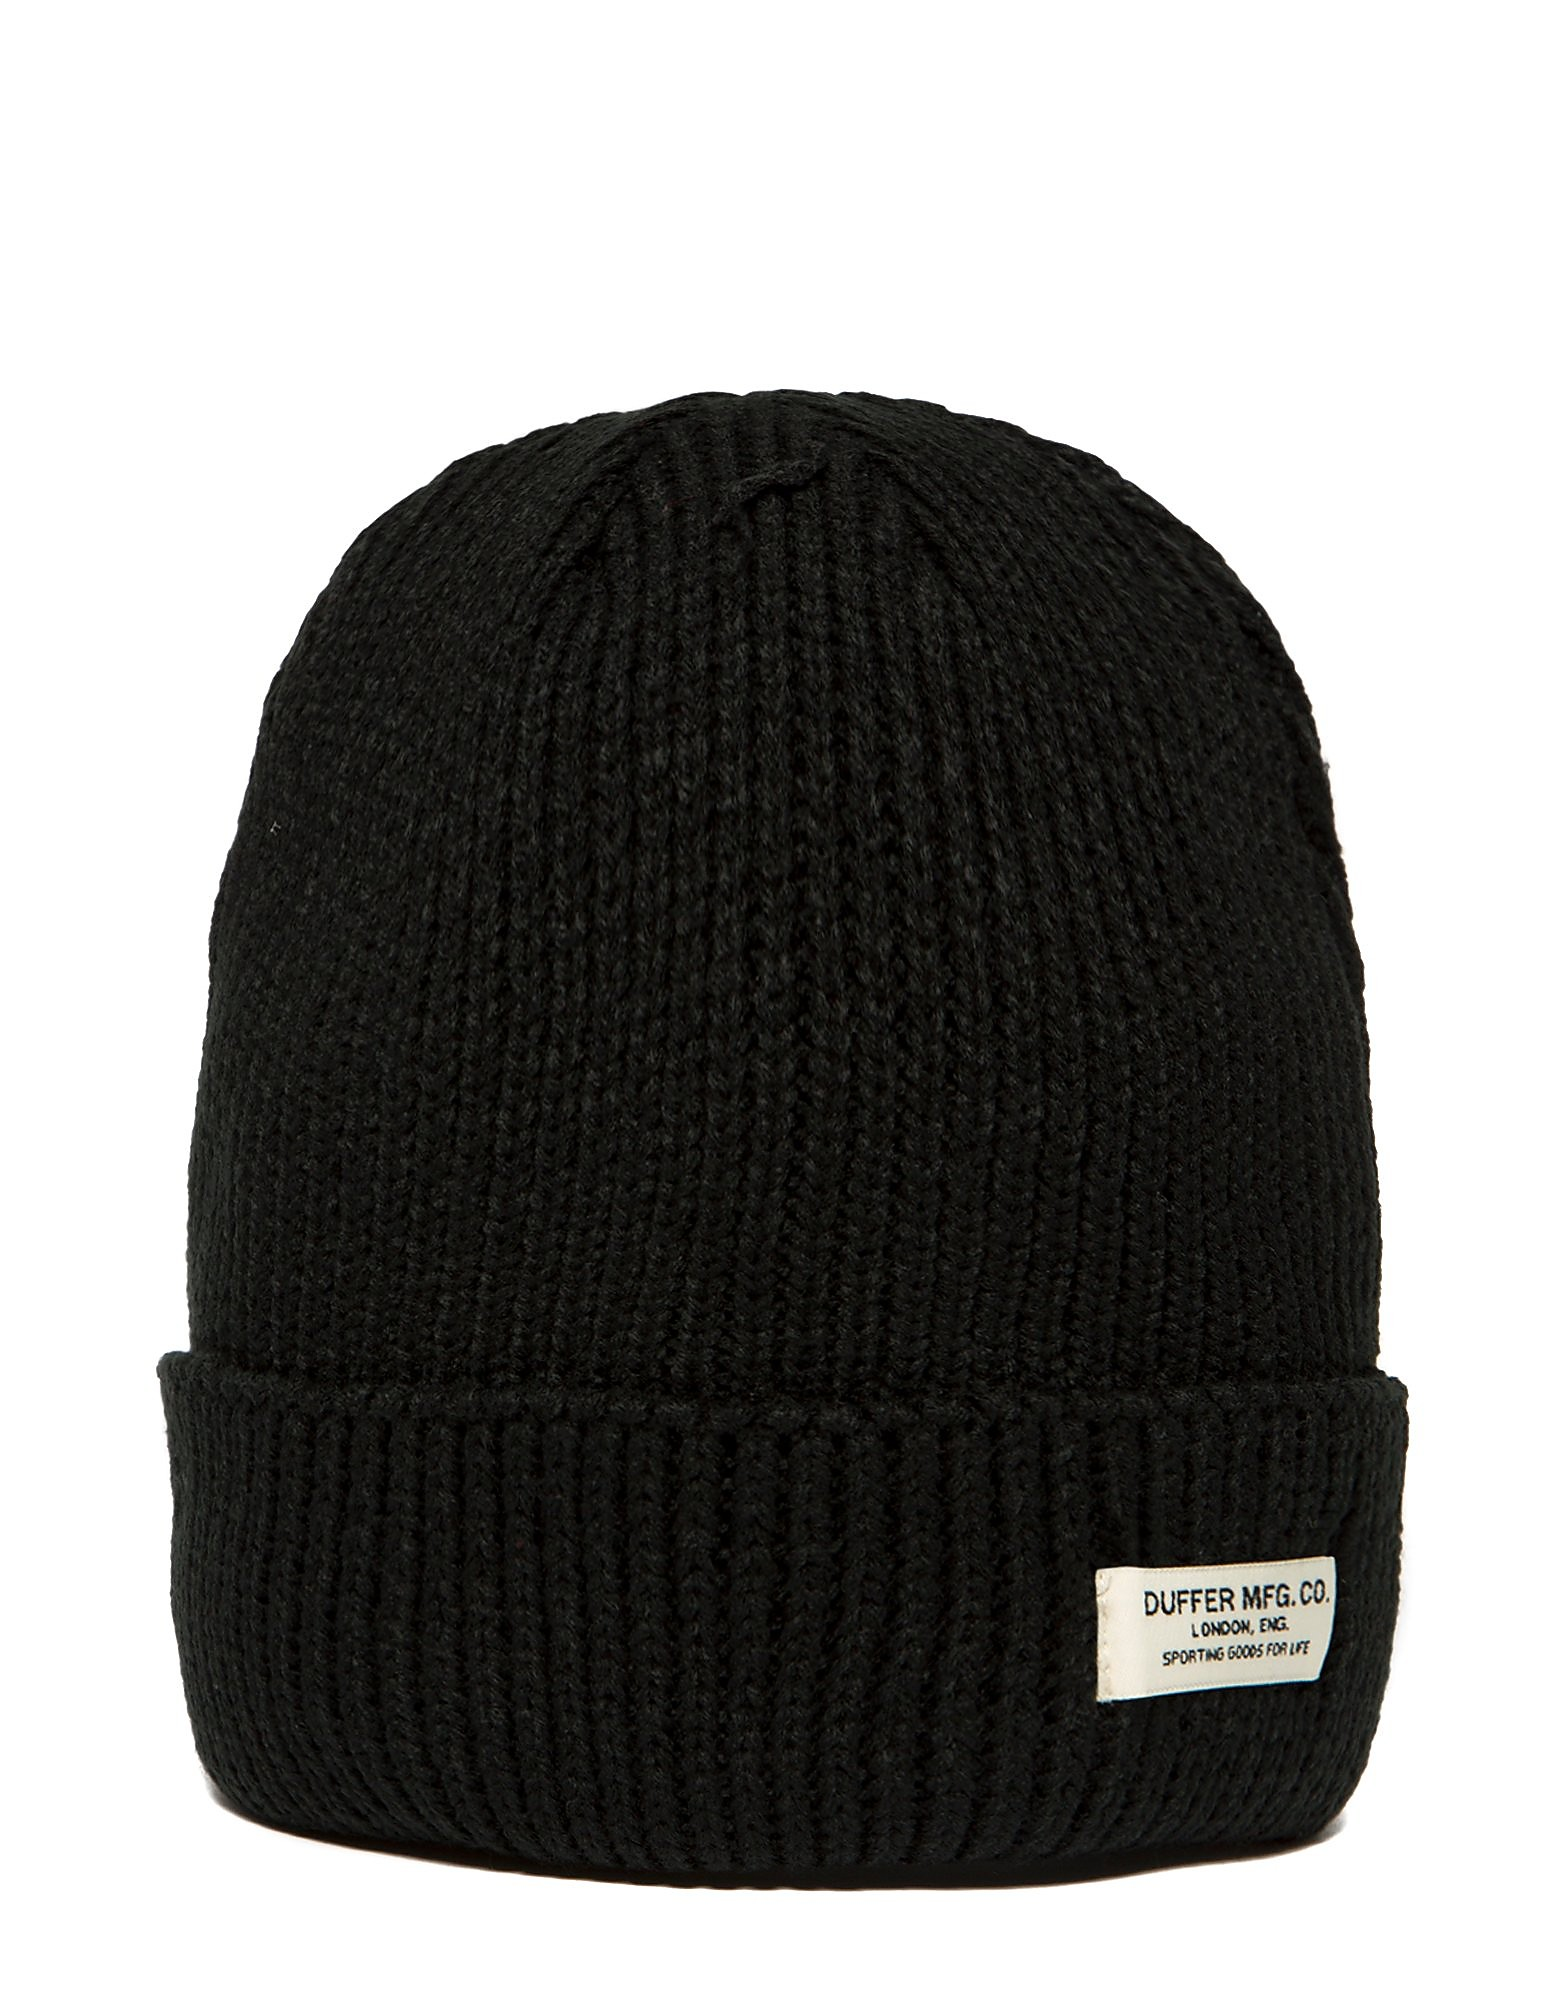 Duffer of St George Anchor 3 Beanie